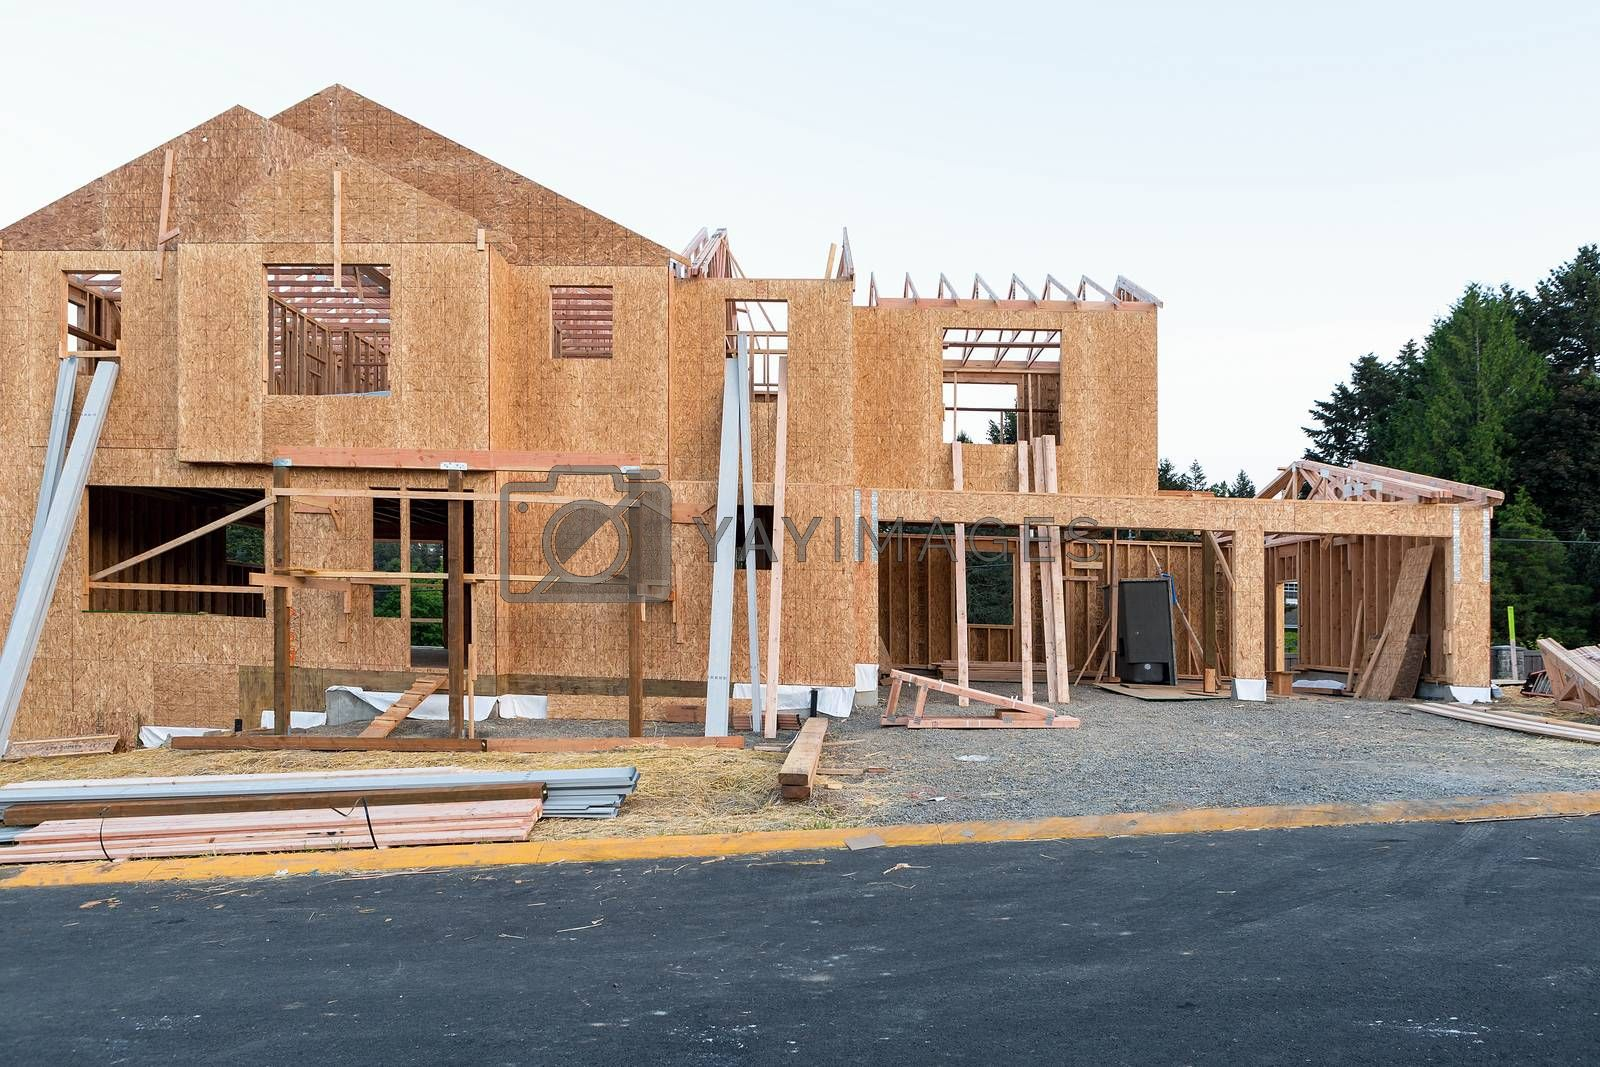 New Single Family Home Construction in New North American Subdivision